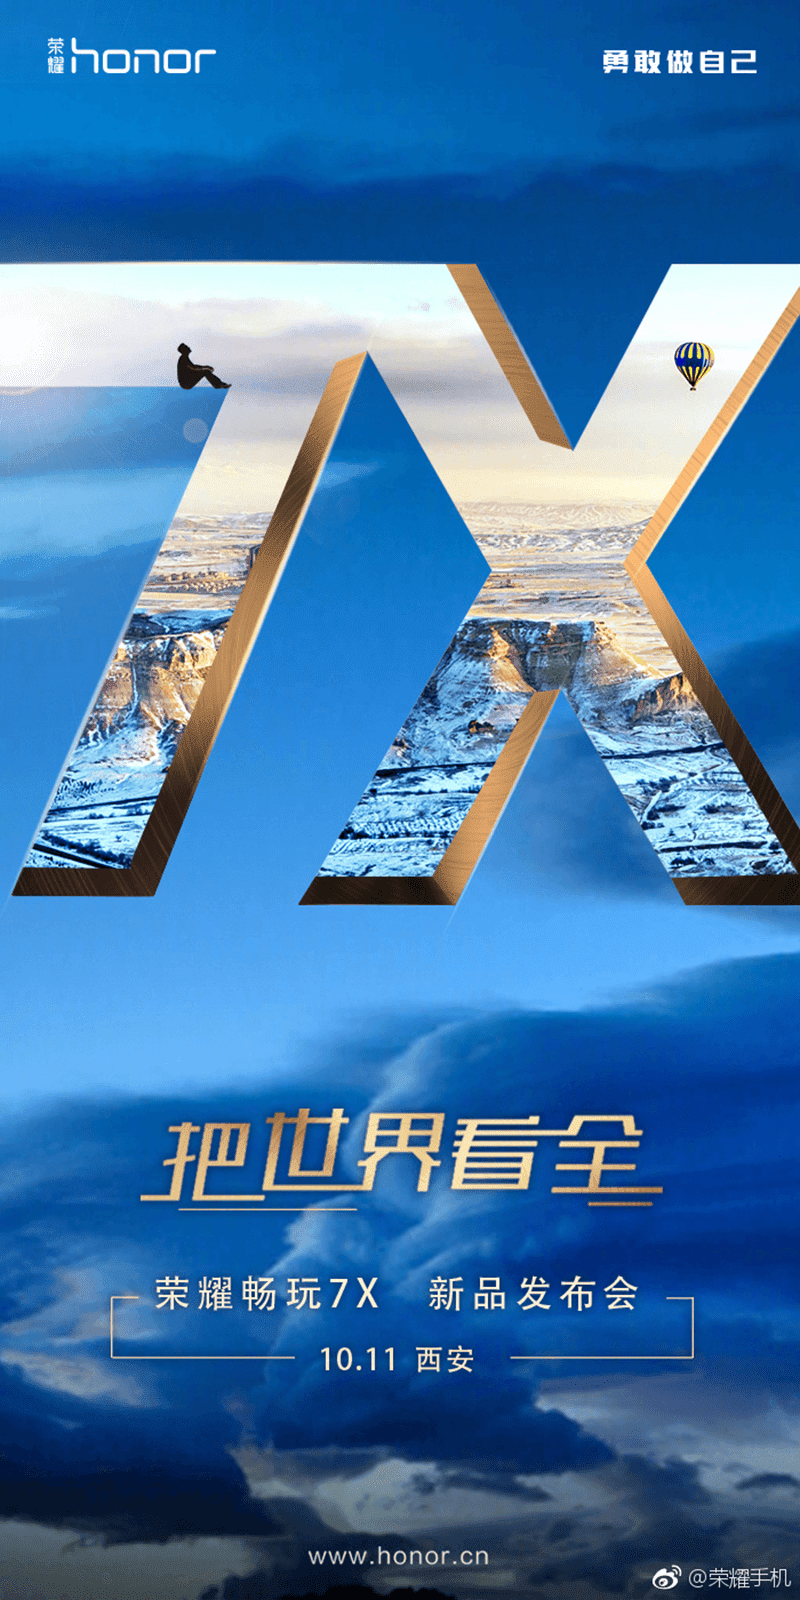 honor-7x-invitation Huawei To Launch Honor 7X This October! Technology